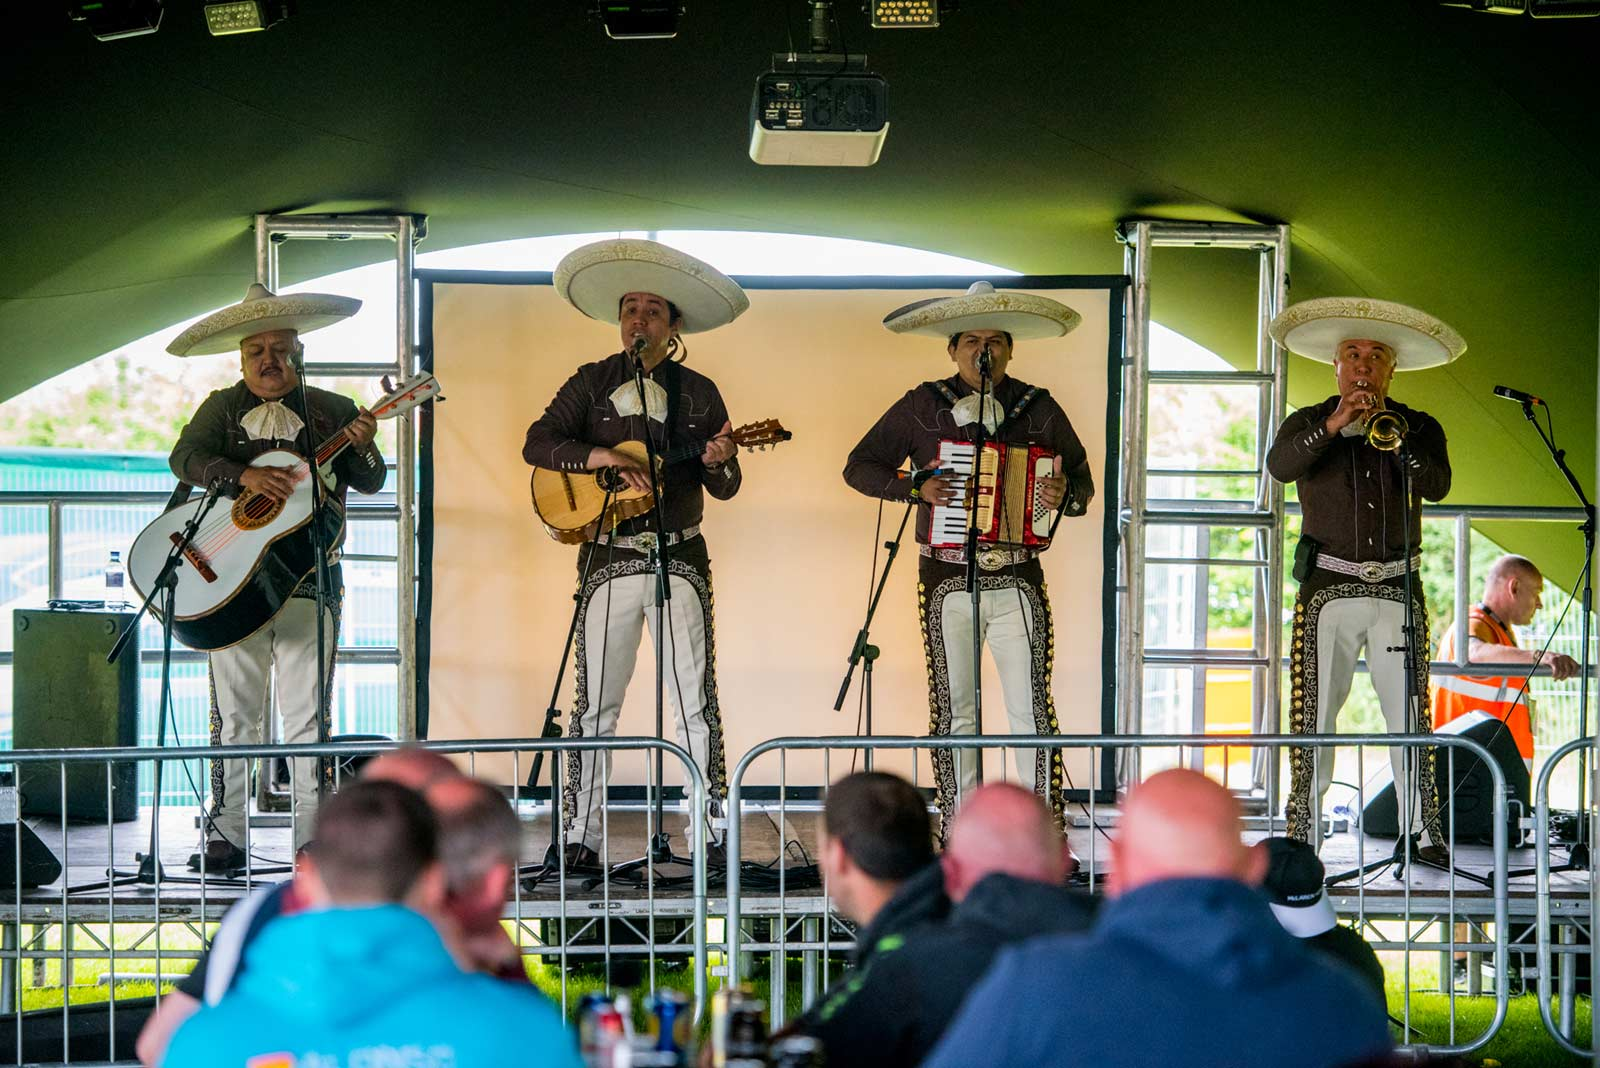 family-entertainment-at-woodlands-campsite-near-circuit-1600w.jpg